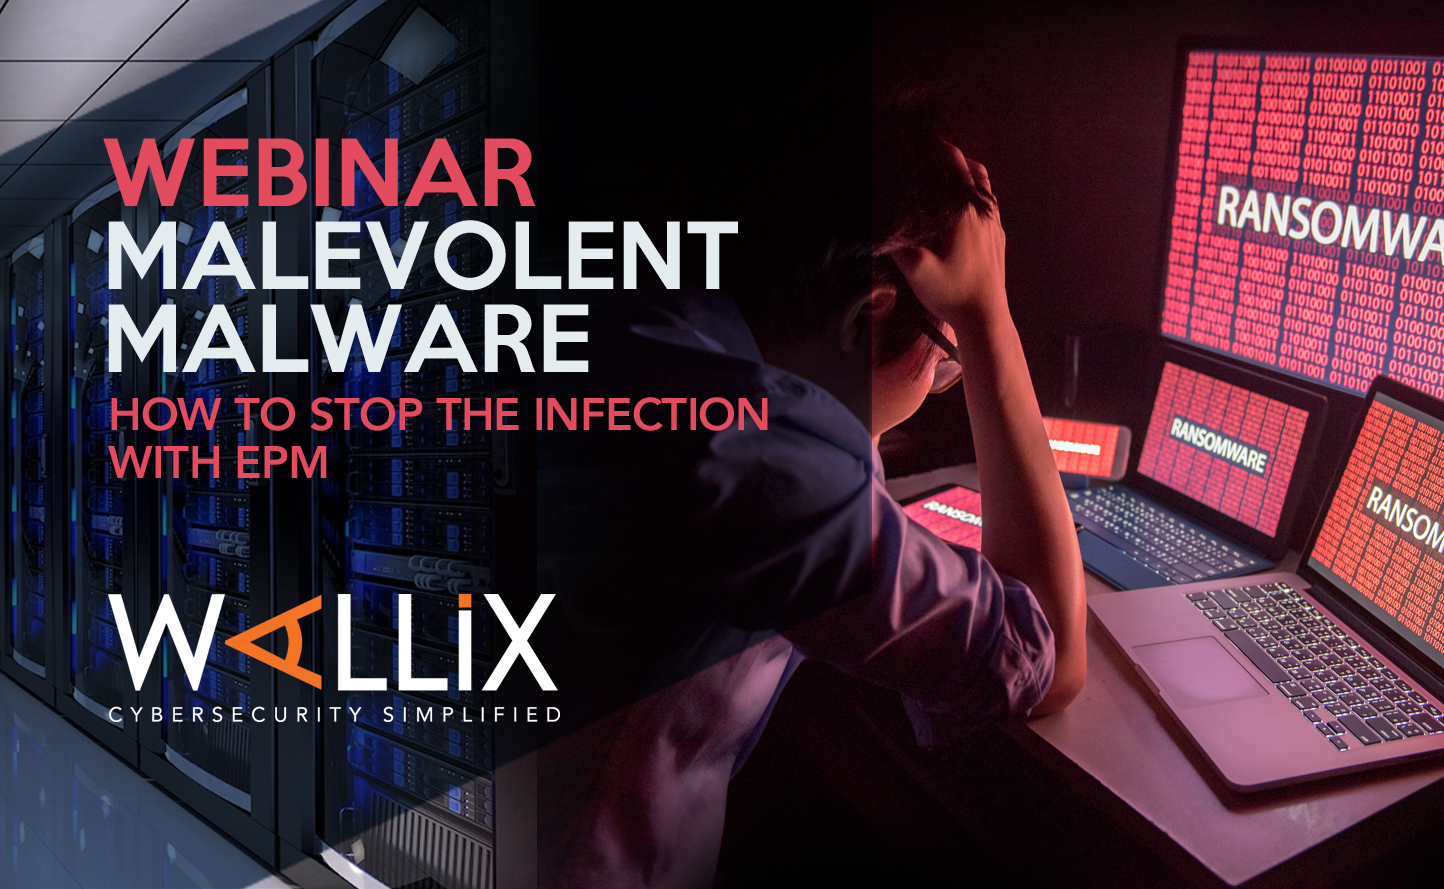 Malevolent Malware: How to stop the infection with EPM